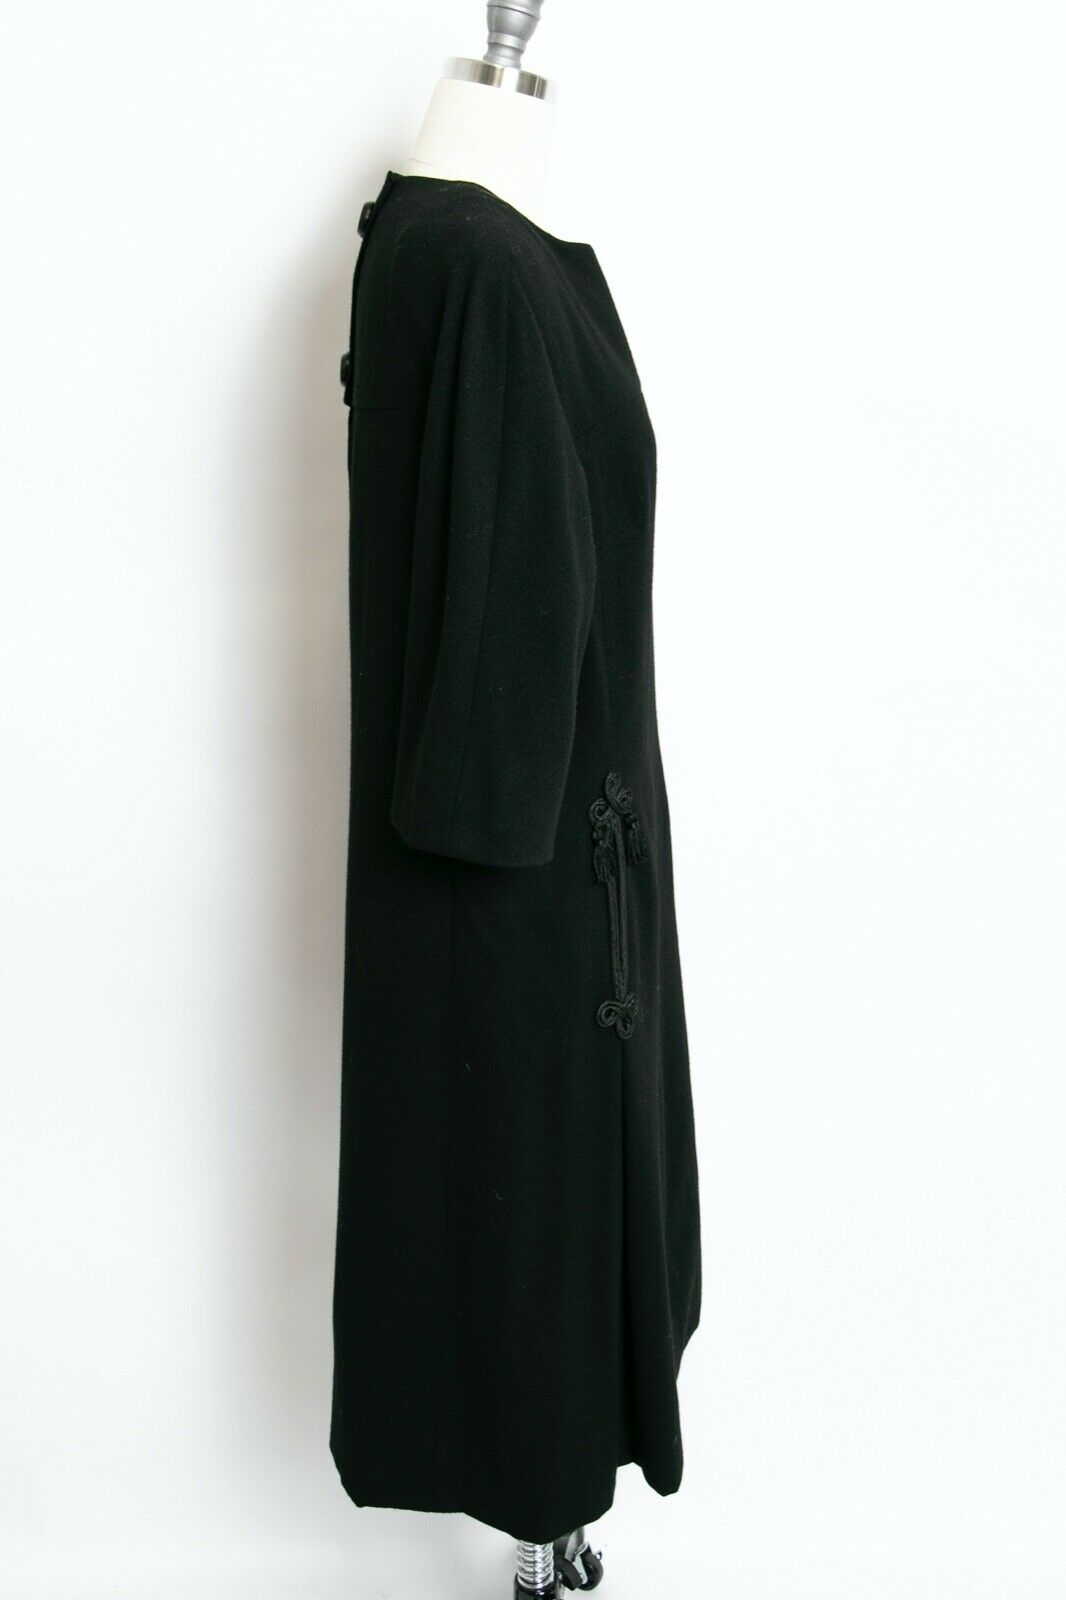 HARVEY BERIN 1960s Dress Black Wool Large - image 3